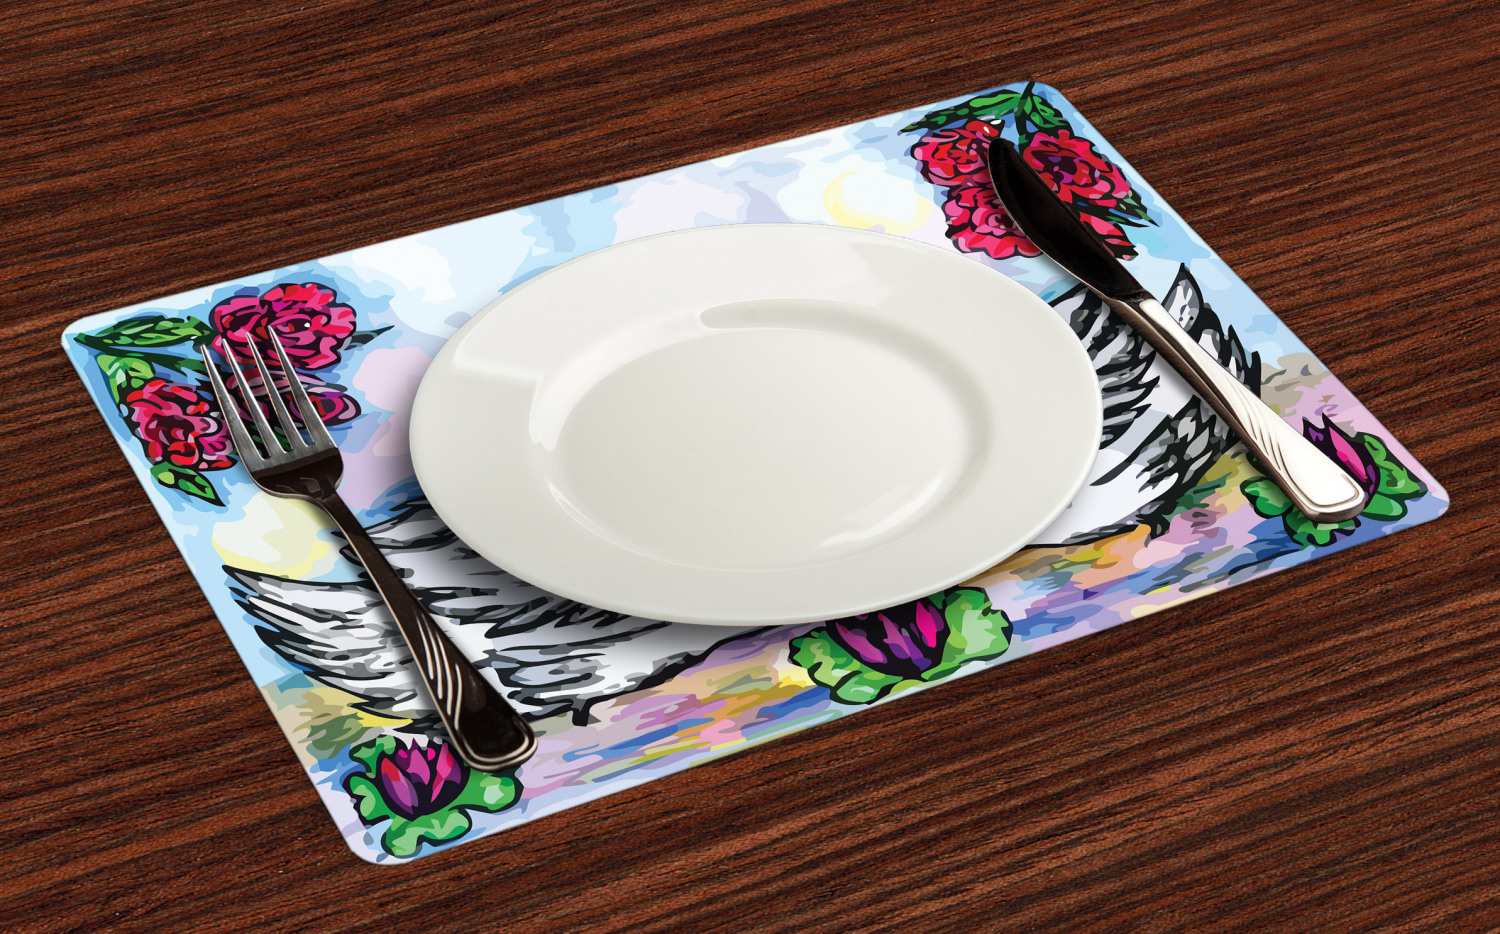 Ambesonne-Flower-Pattern-Placemat-Set-of-4-Fabric-Place-Mats-for-Table-Decor thumbnail 5